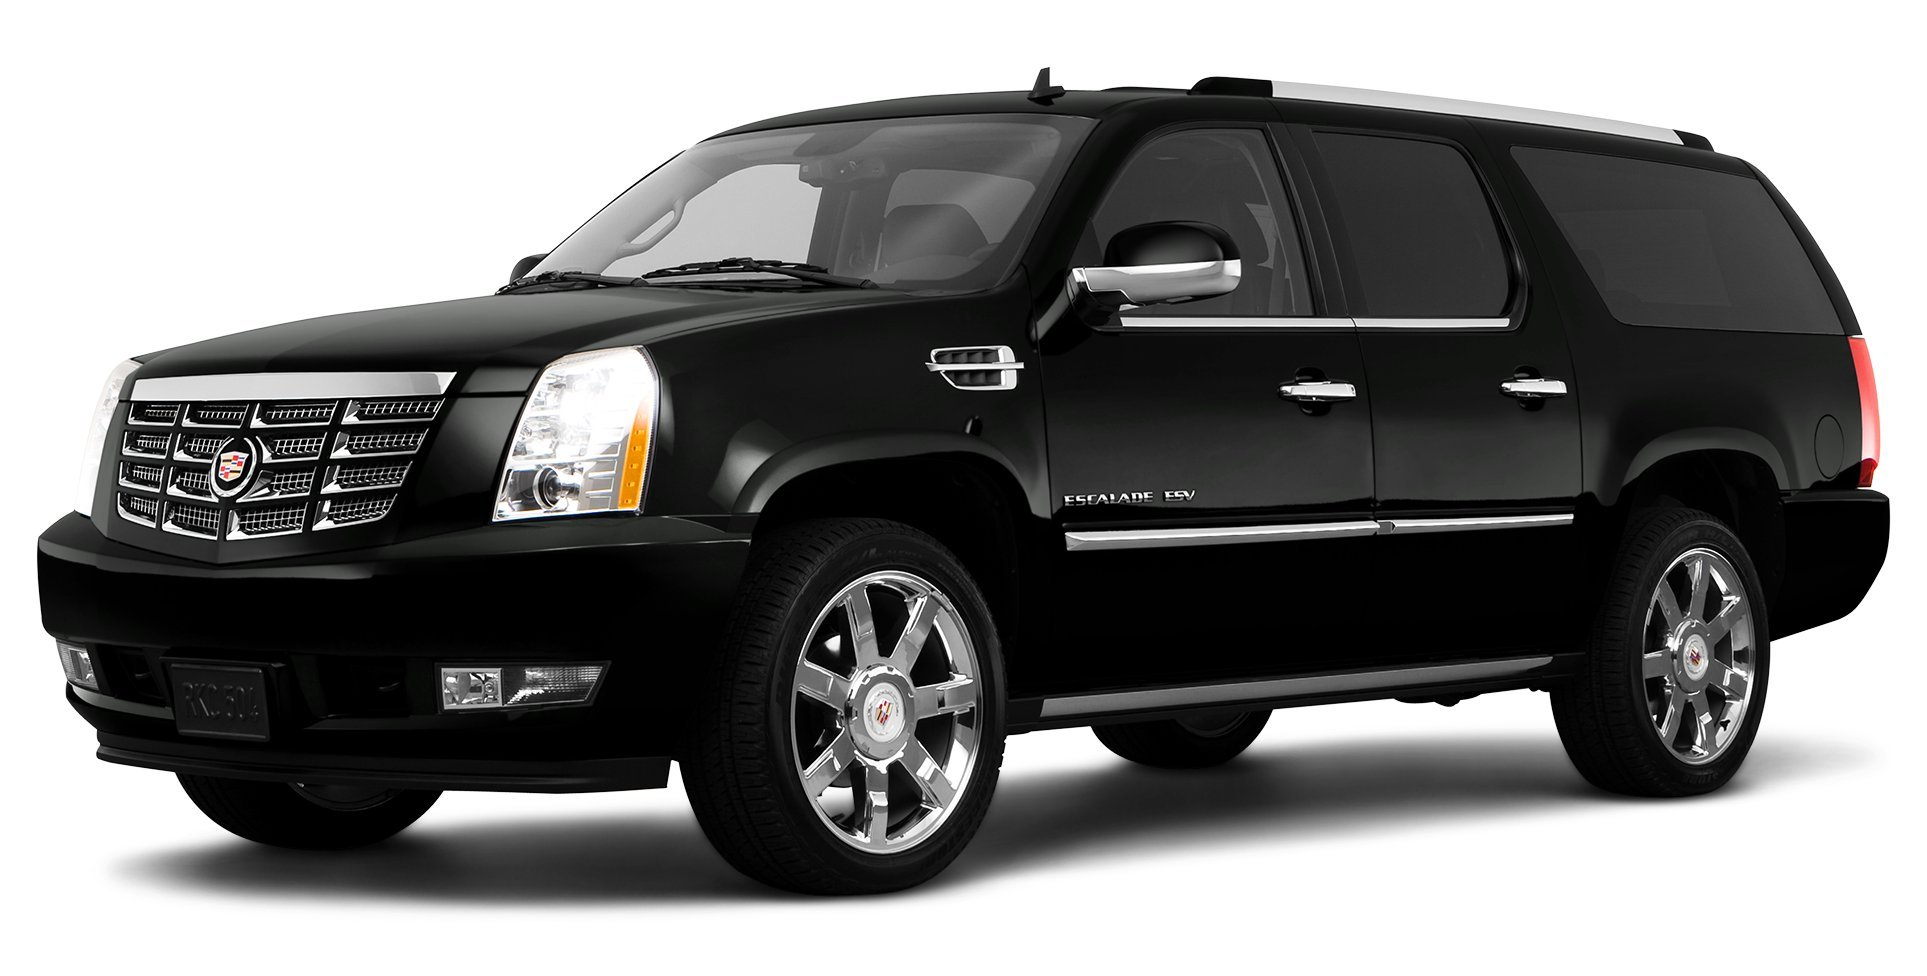 2010 cadillac escalade reviews images and. Black Bedroom Furniture Sets. Home Design Ideas